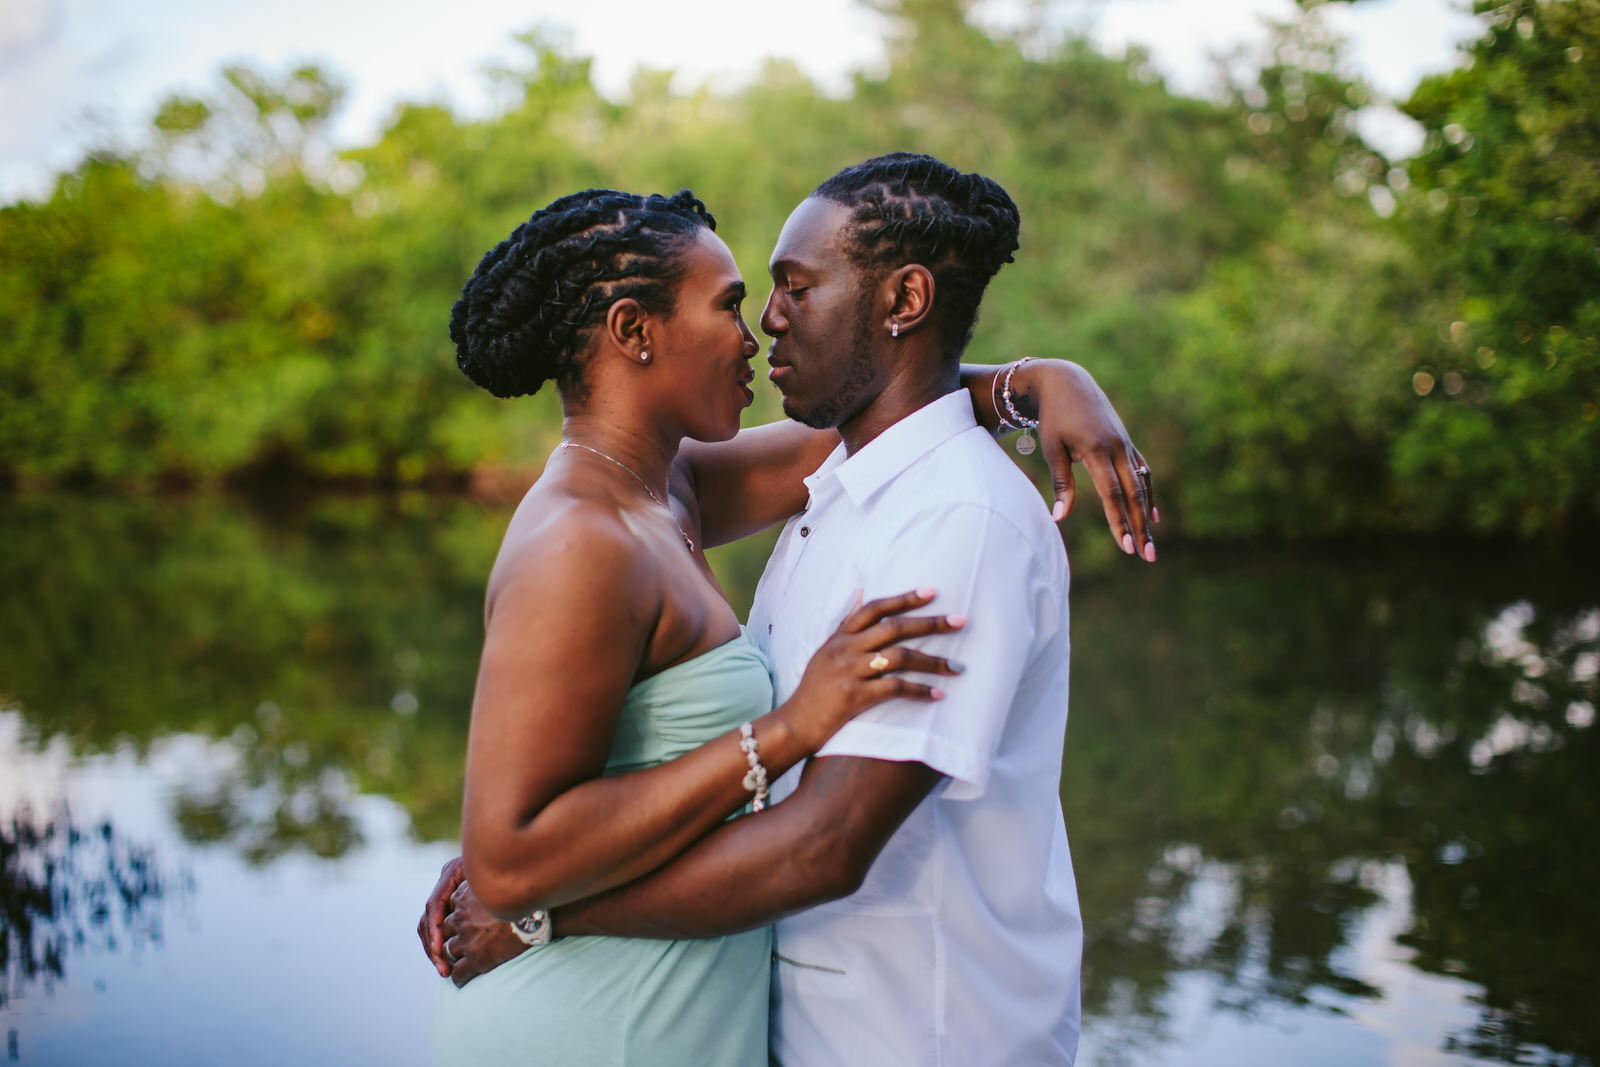 tropical-destination-engagement-portraits-tiny-house-photo-florida-wedding-photographer-13.jpg